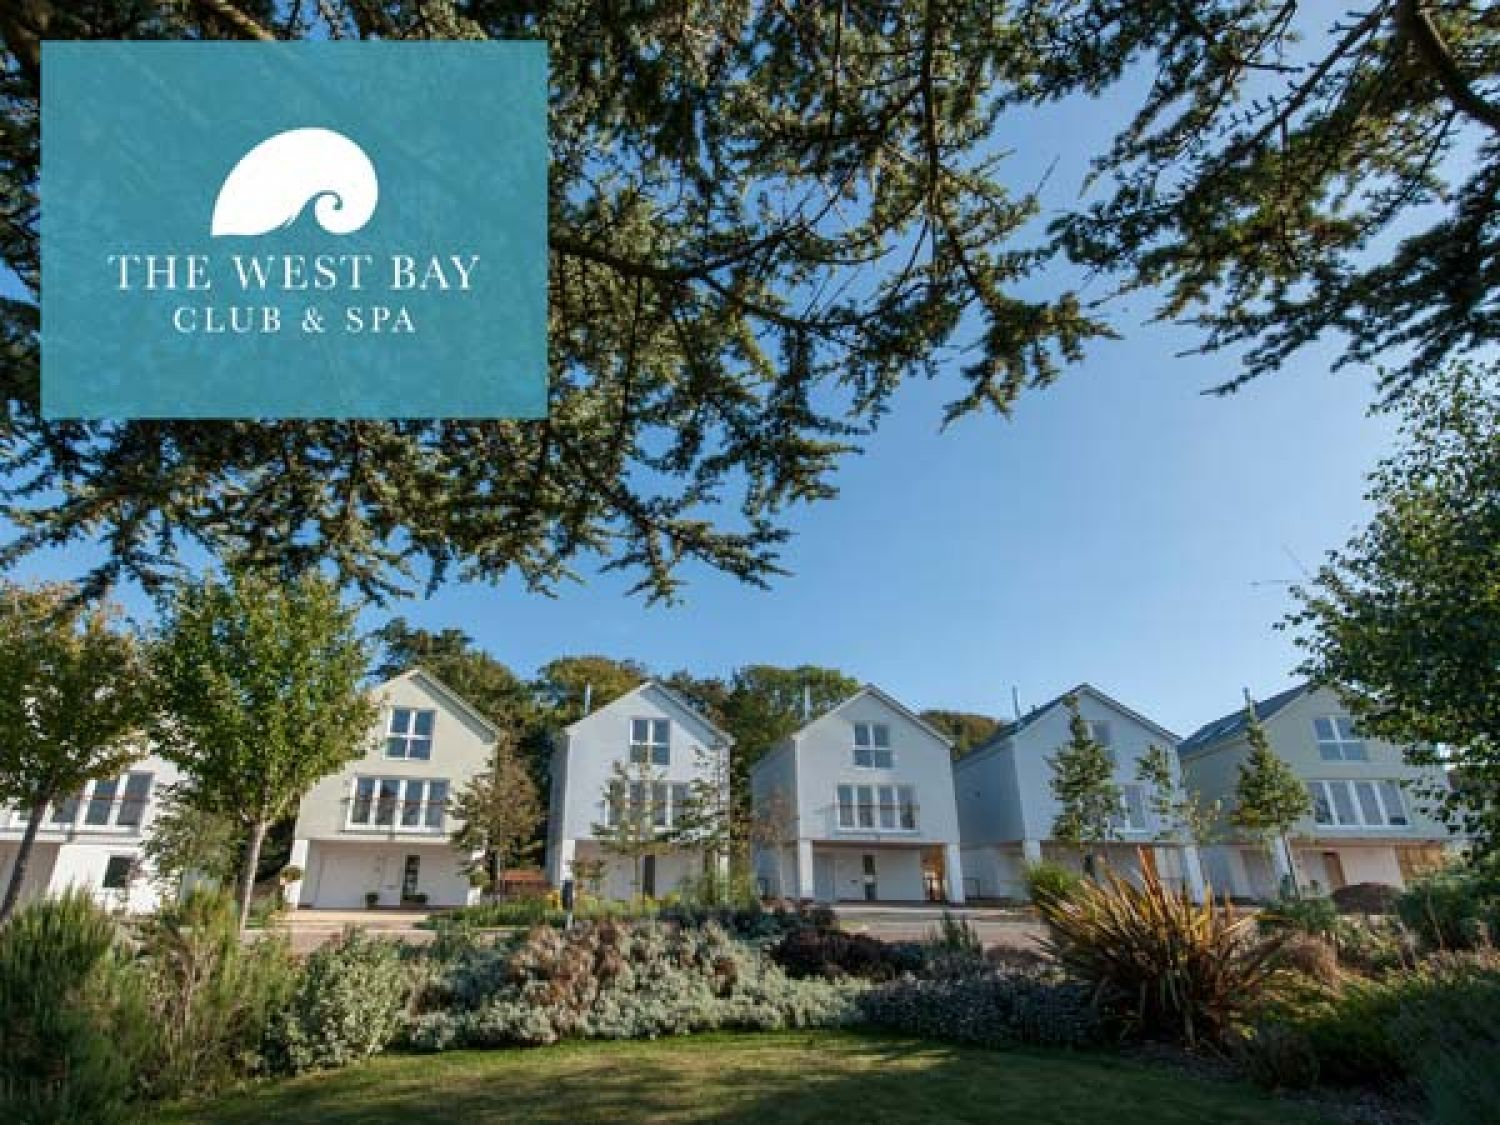 Five bedroom house at The West Bay Club & Spa - Isle of Wight & Hampshire - 943928 - photo 1